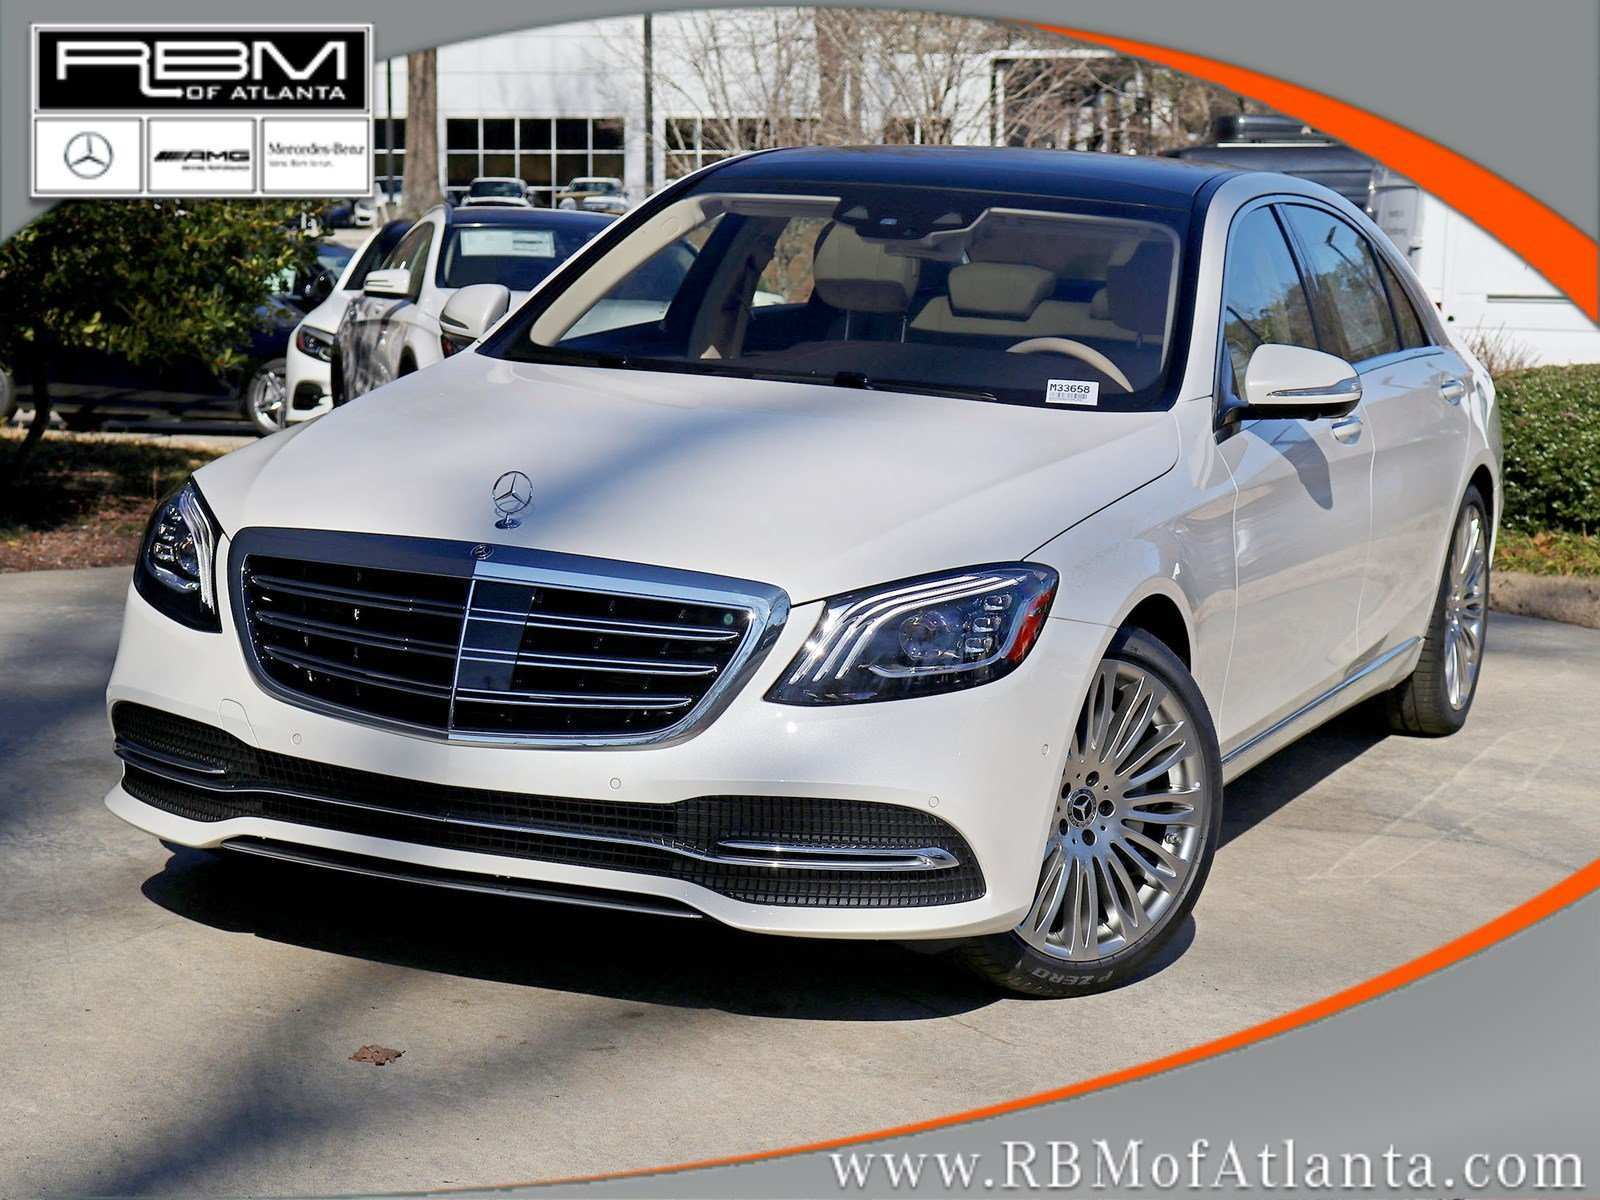 88 A S450 Mercedes 2019 Engine